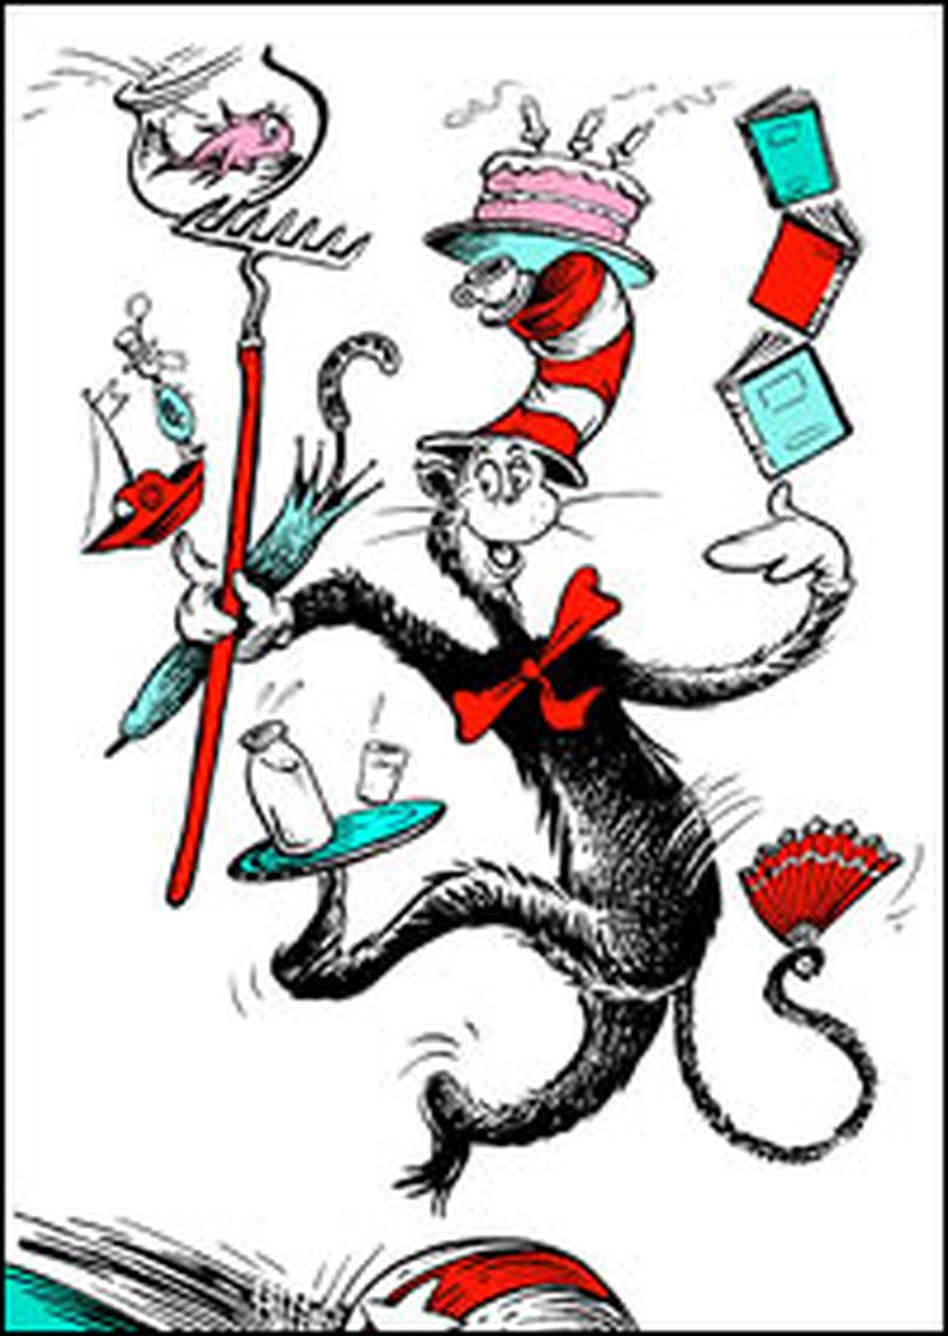 Free Cat In The Hat Clip Art Pictures - Clipartix - Free Printable Cat In The Hat Clip Art